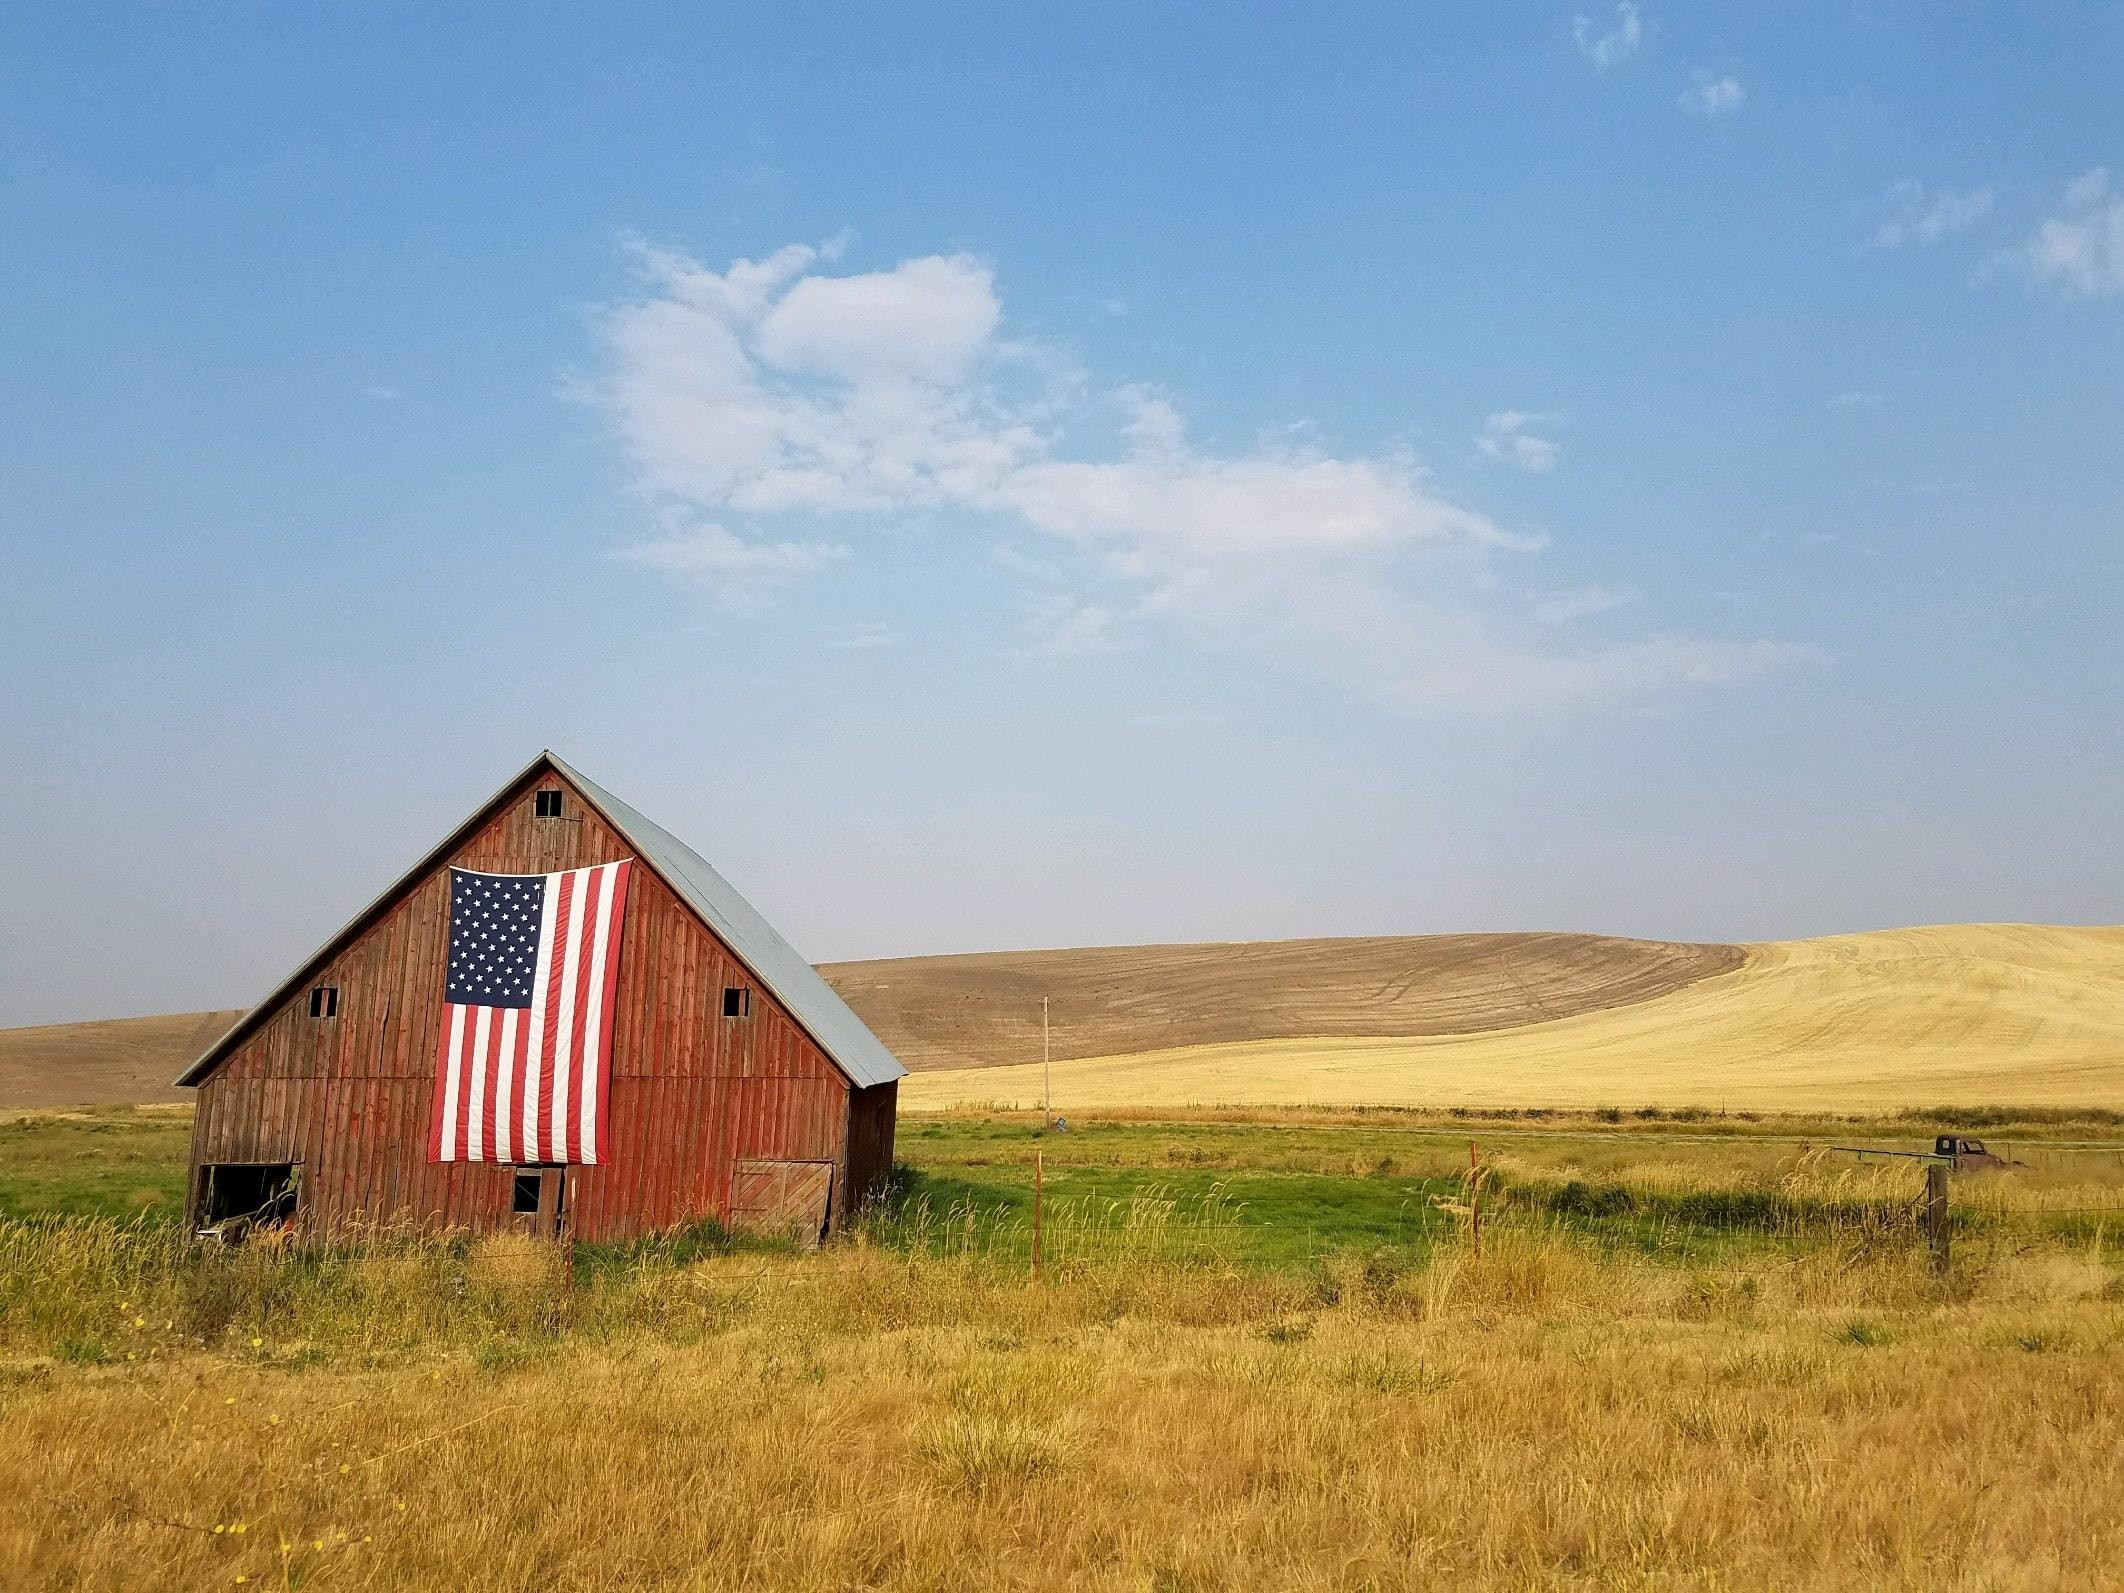 a barn with an american flag on the exterior, in a remote, agricultural landscape